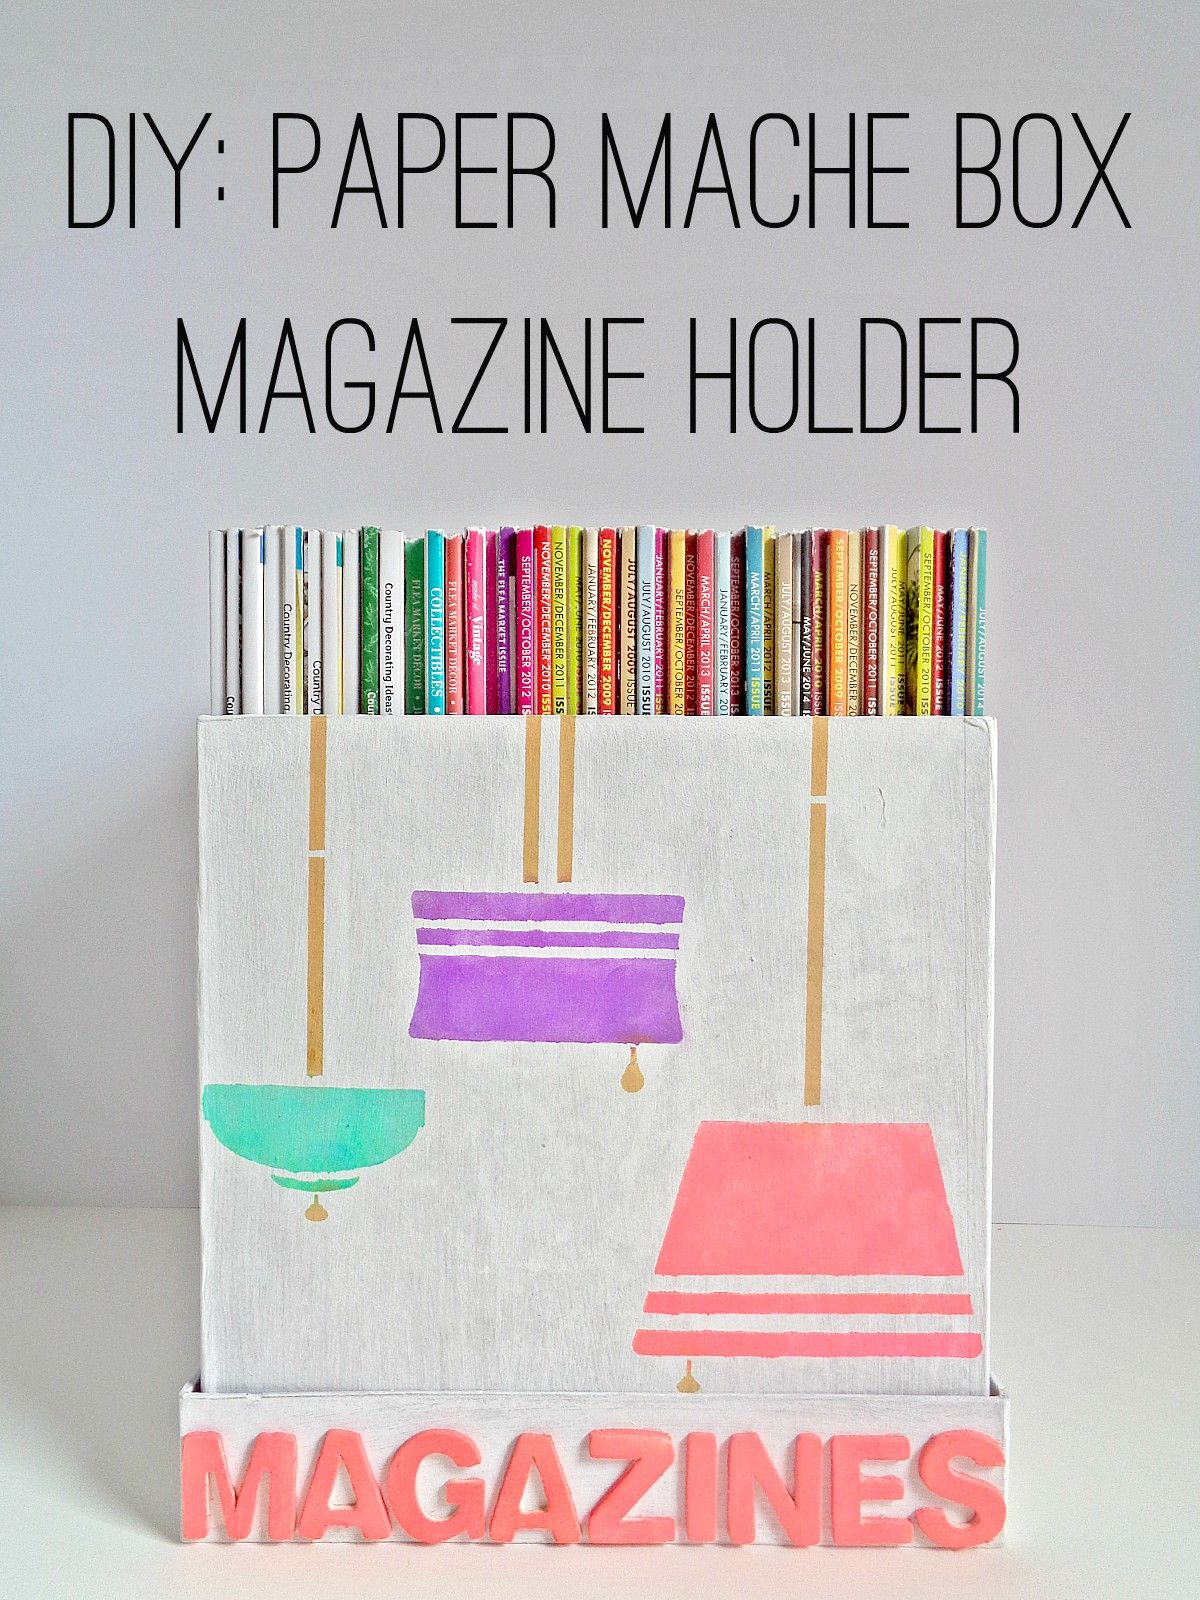 Paper mache storage for your favorite magazines